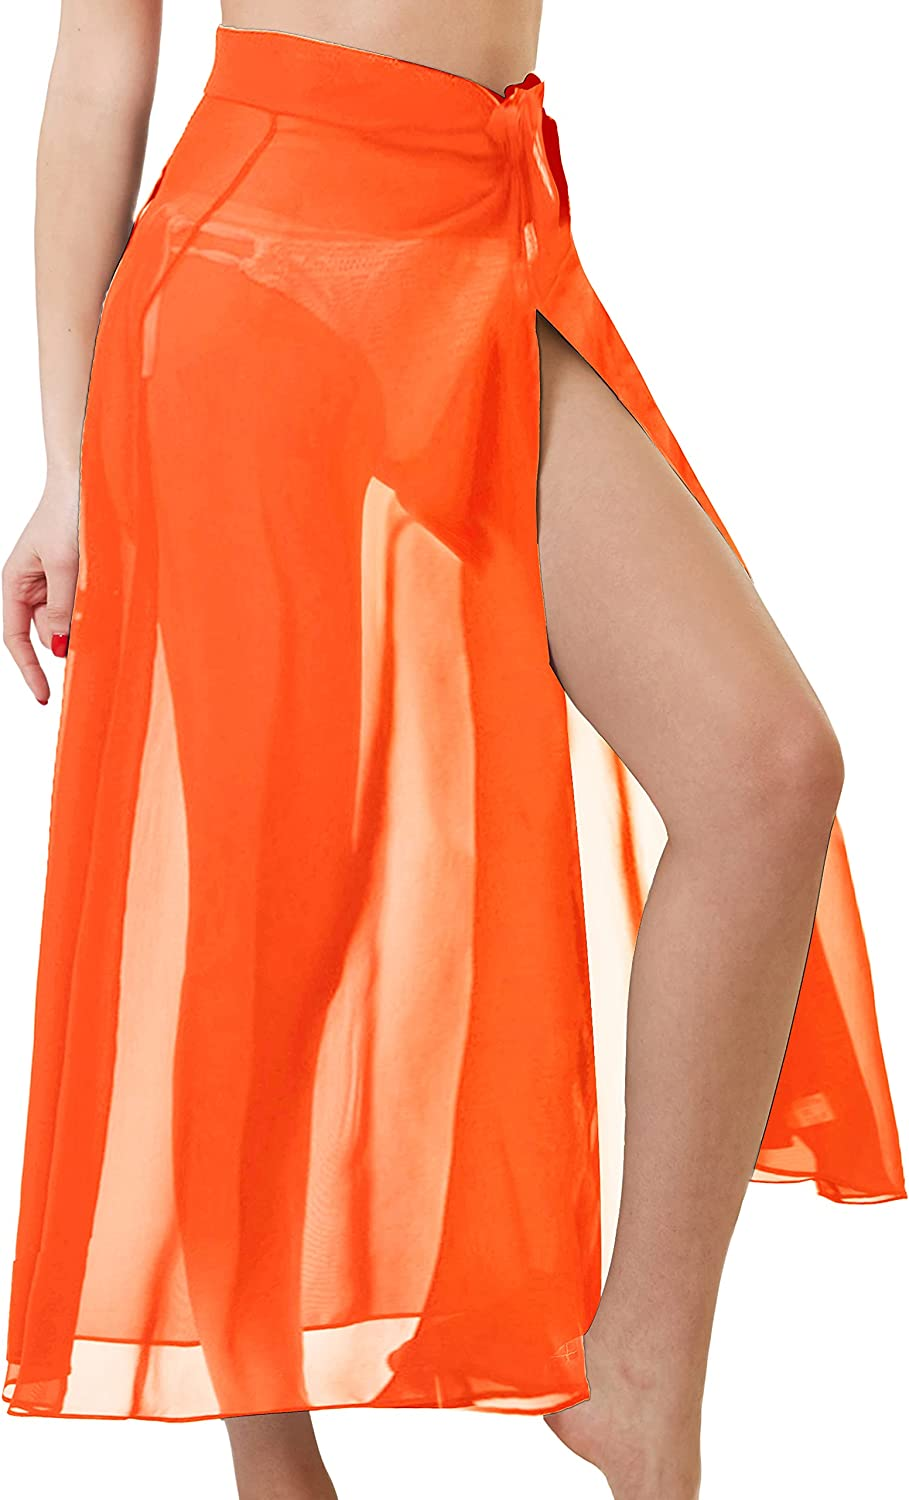 Sarong Swimsuit Cover Ups for Women Sheer Bathing Suit Beach Skirt Maxi Wrap